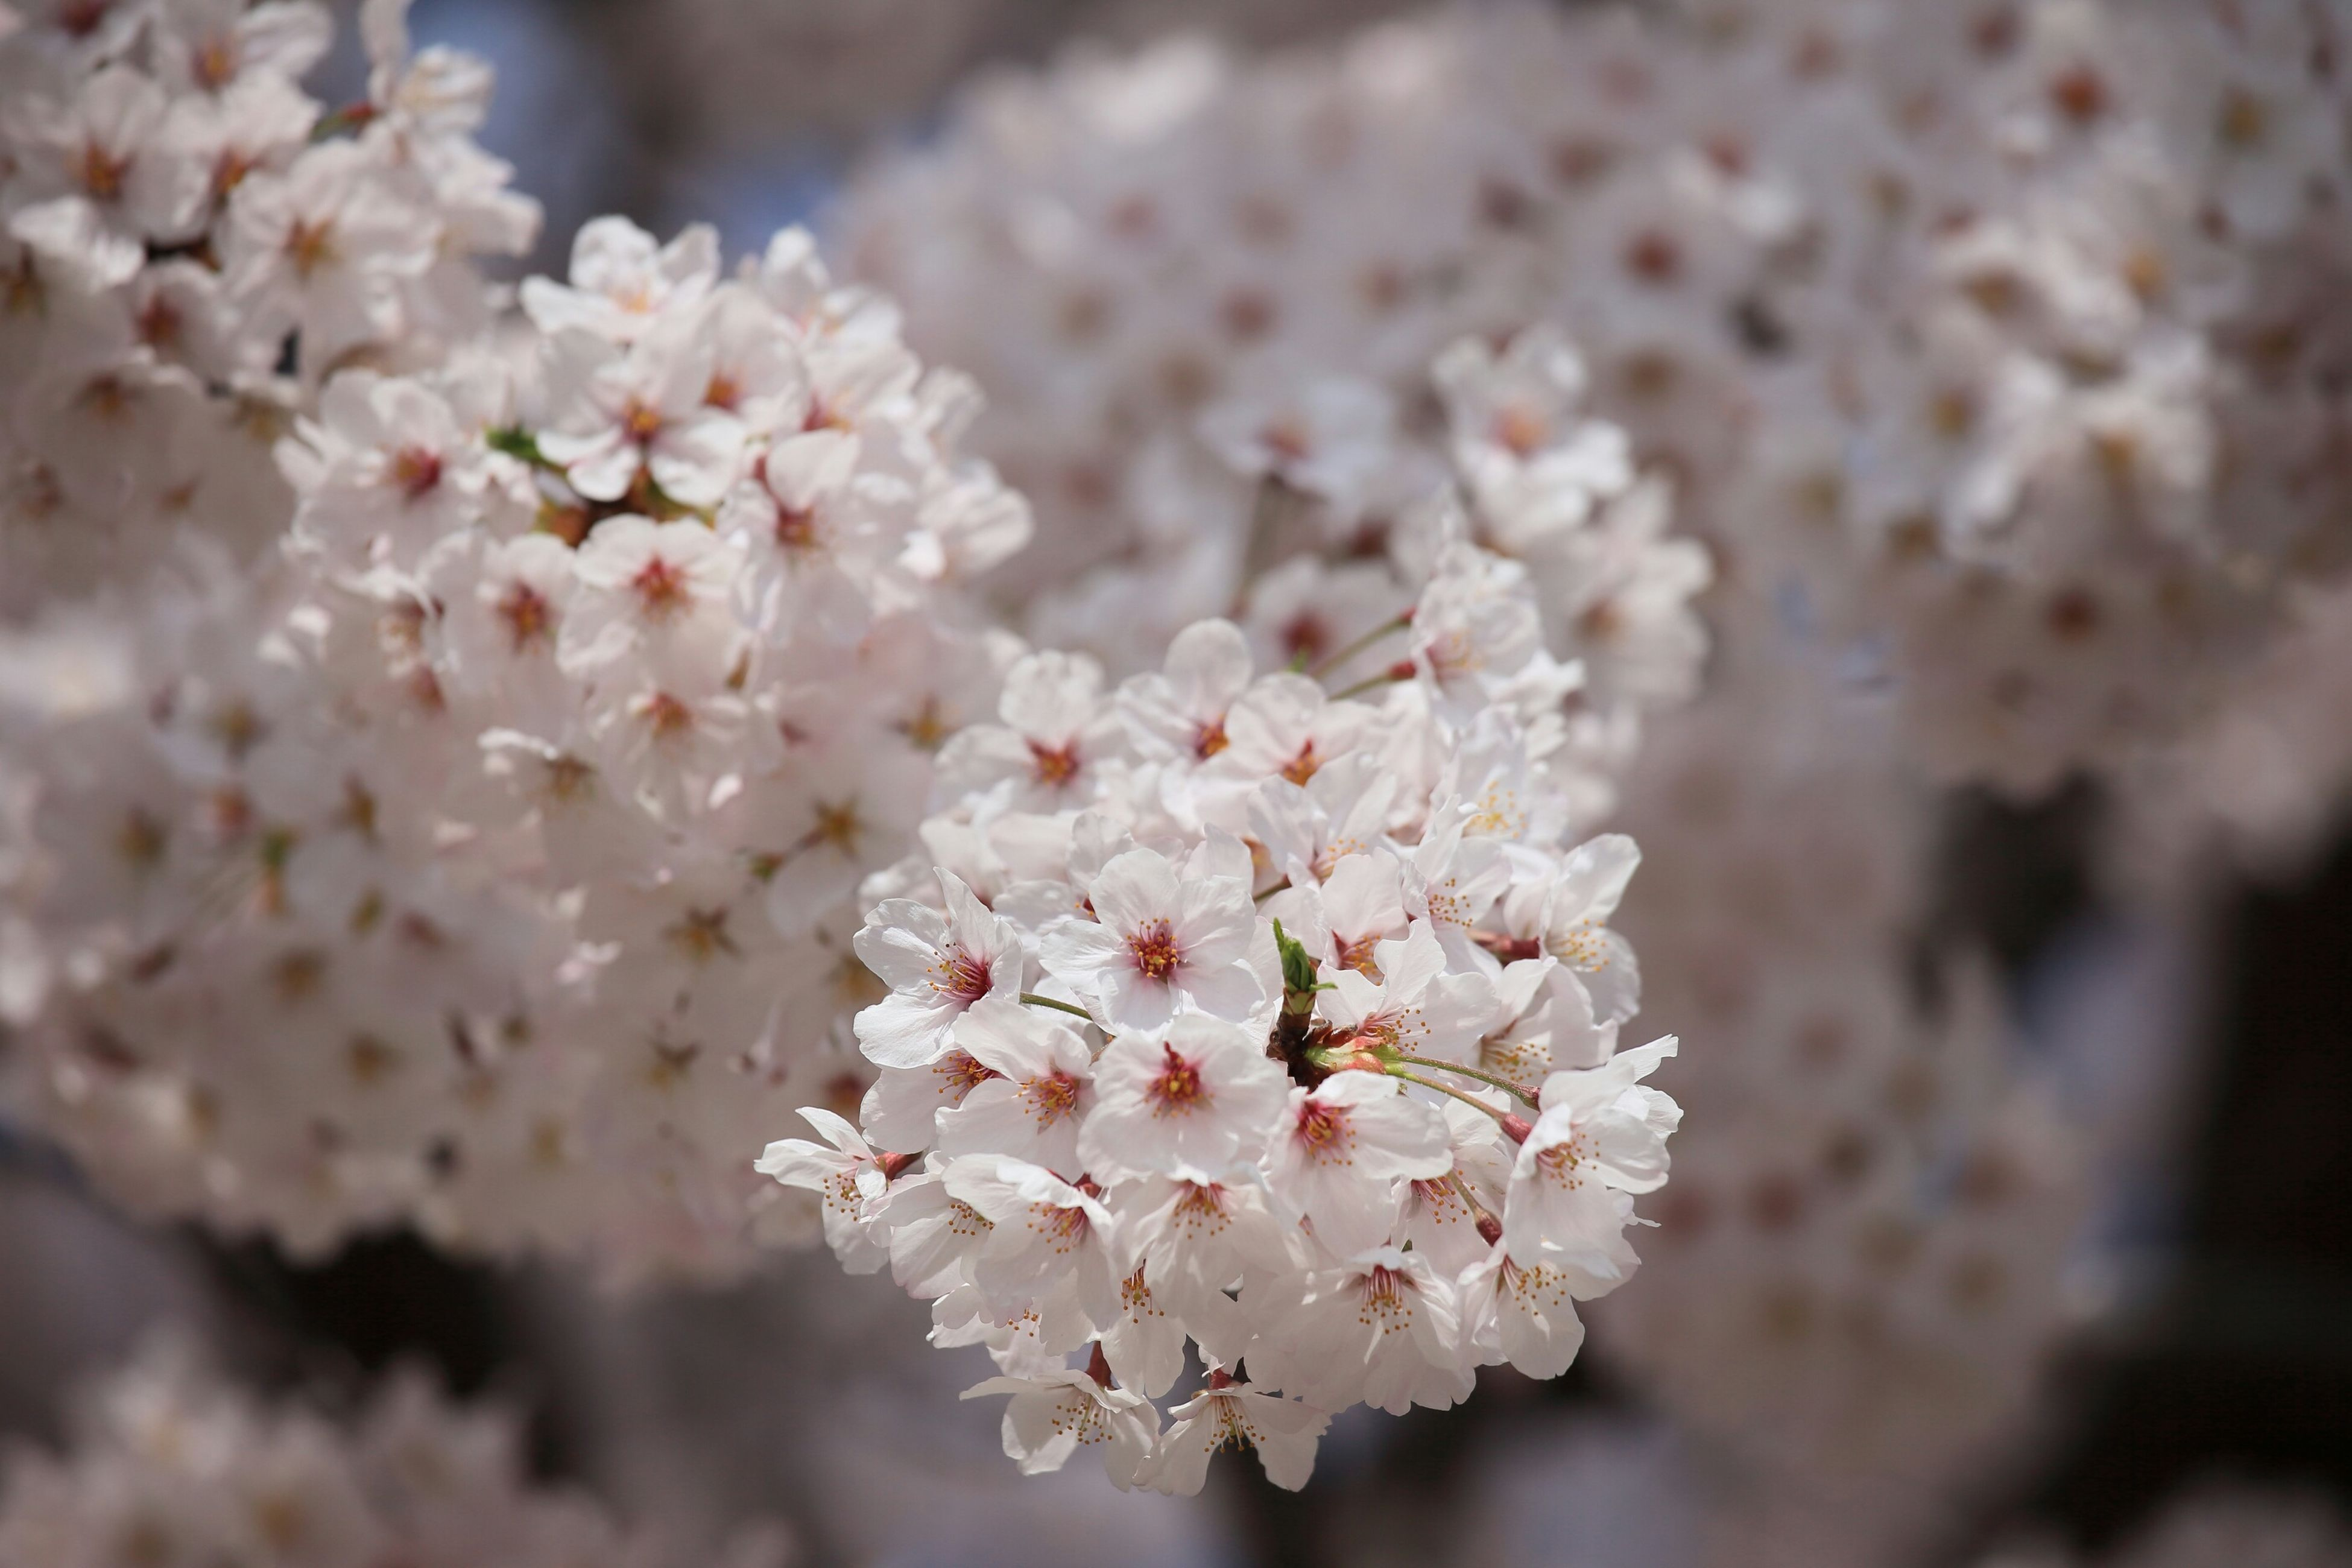 flower, freshness, fragility, growth, cherry blossom, petal, beauty in nature, branch, blossom, focus on foreground, cherry tree, tree, nature, close-up, white color, blooming, flower head, in bloom, springtime, twig